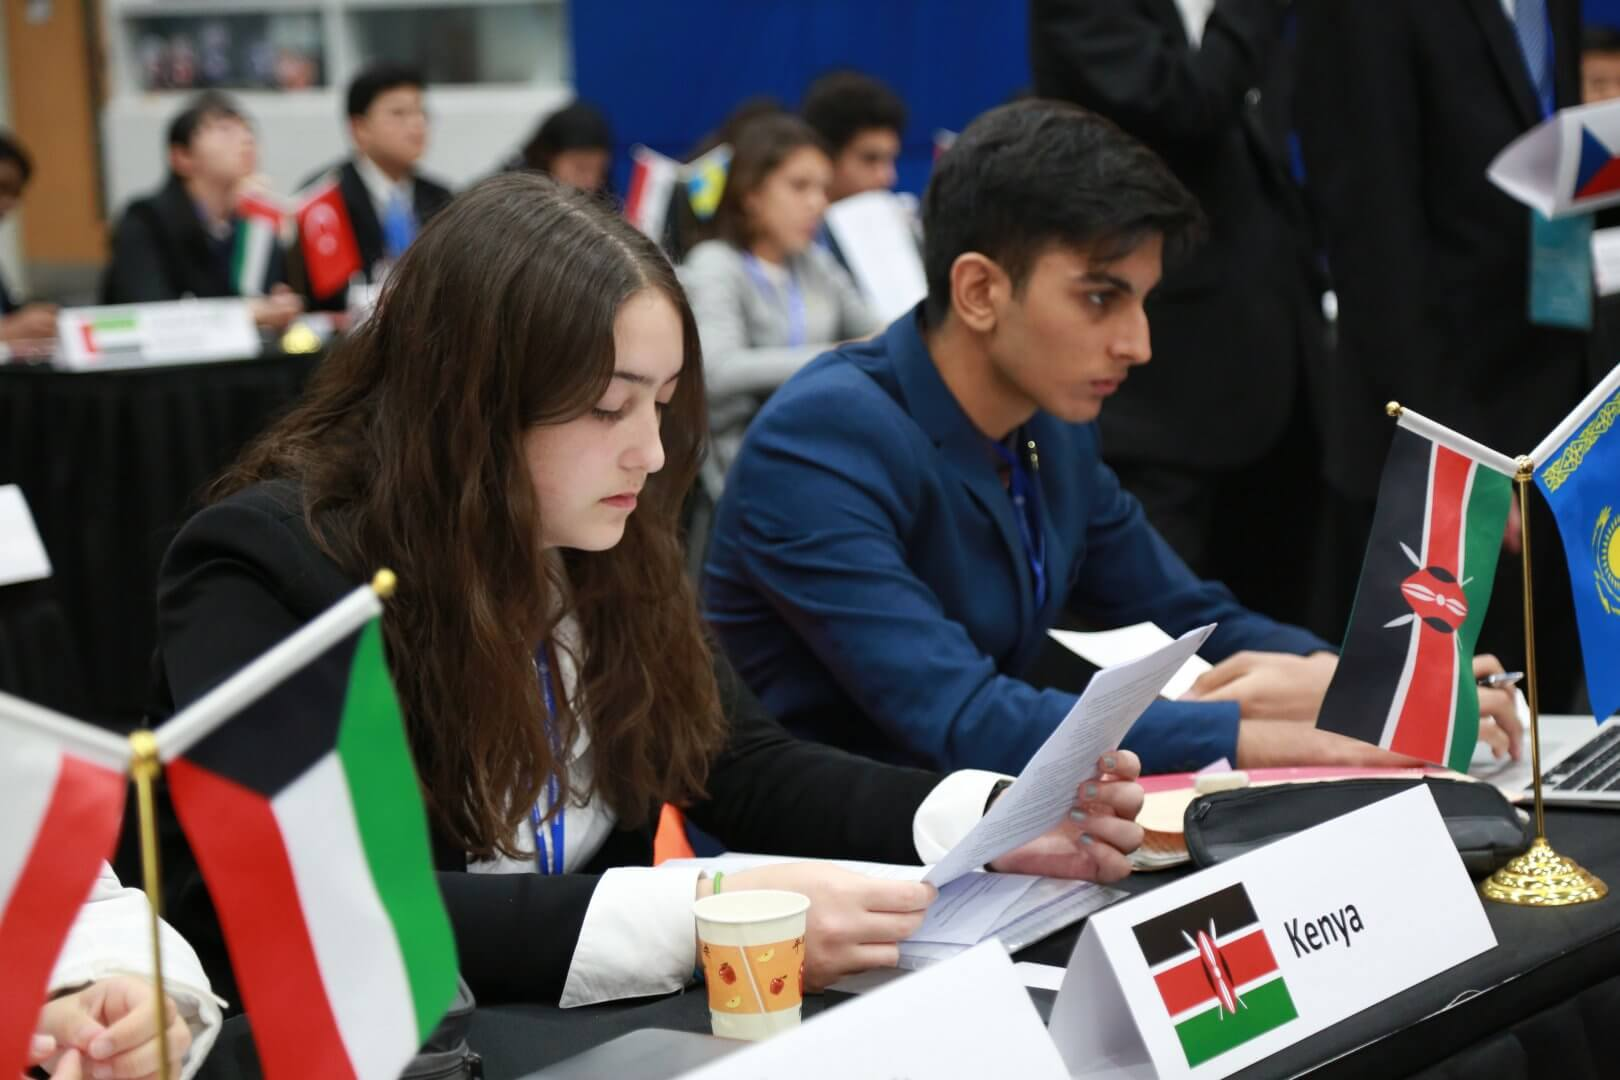 WISS student reviewing her notes at MUN Conference 2020